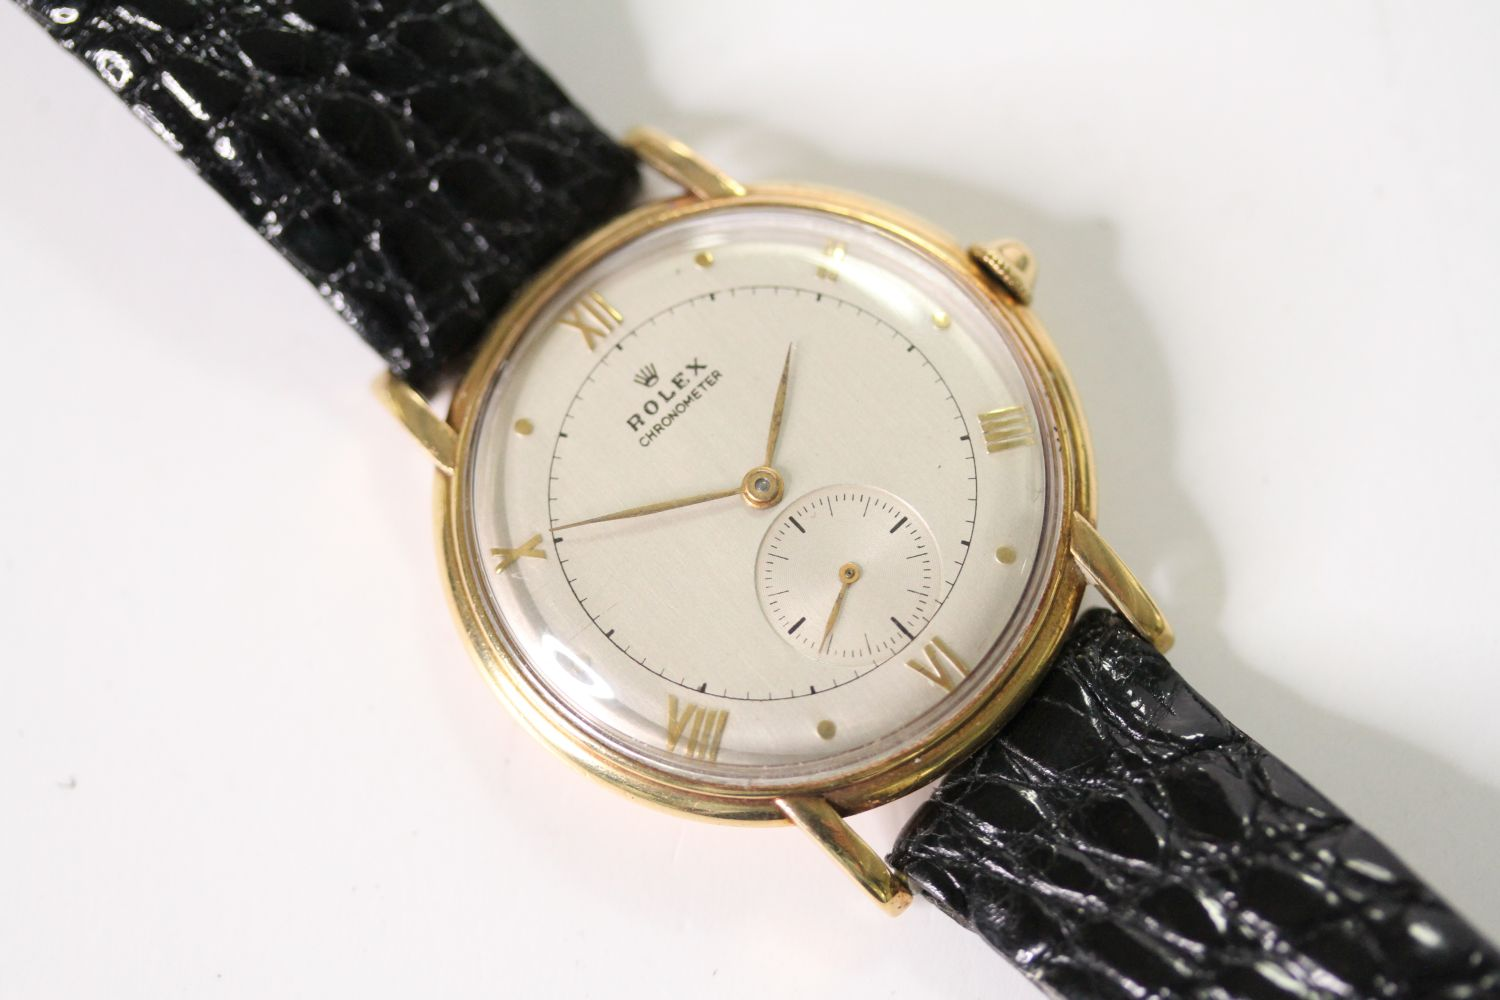 VINTAGE ROLEX OVERSIZE WRISTWATCH CIRCA 1940s, circular silver dial with roman numerals and dot hour